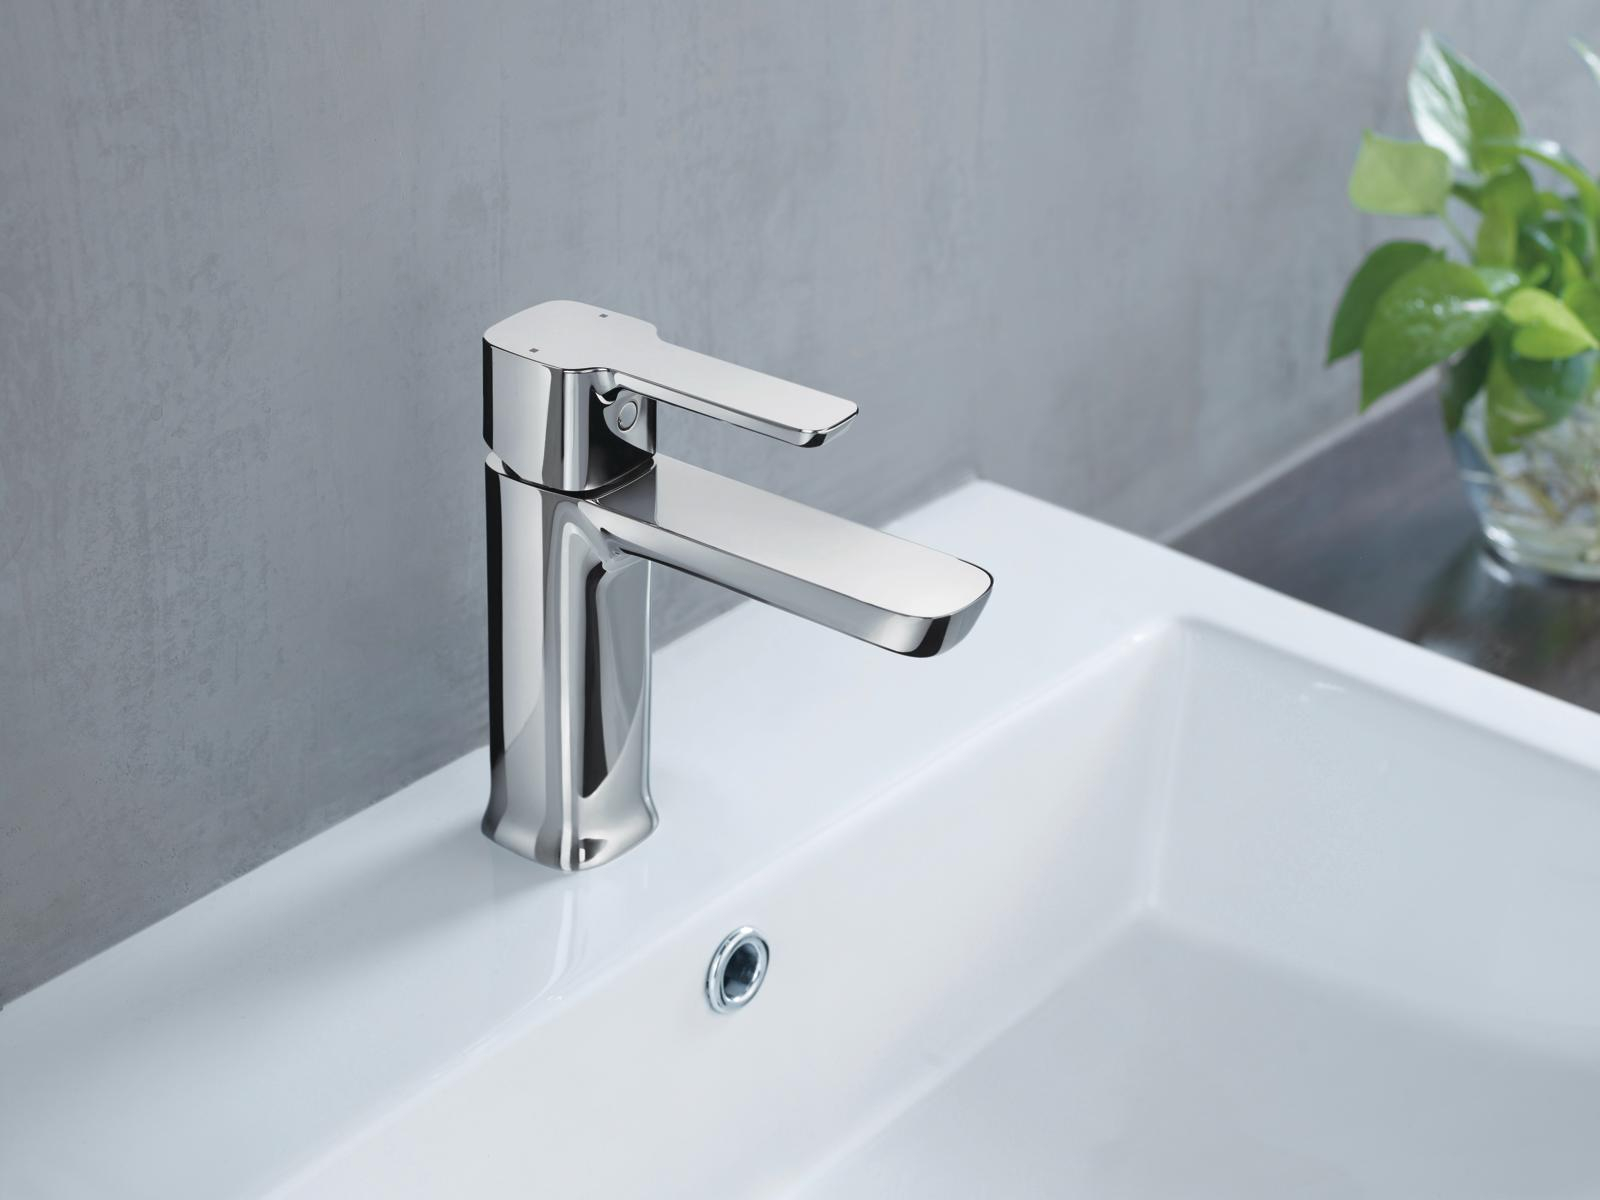 Modern Bathroom Collection Delta Faucet pertaining to size 1600 X 1200